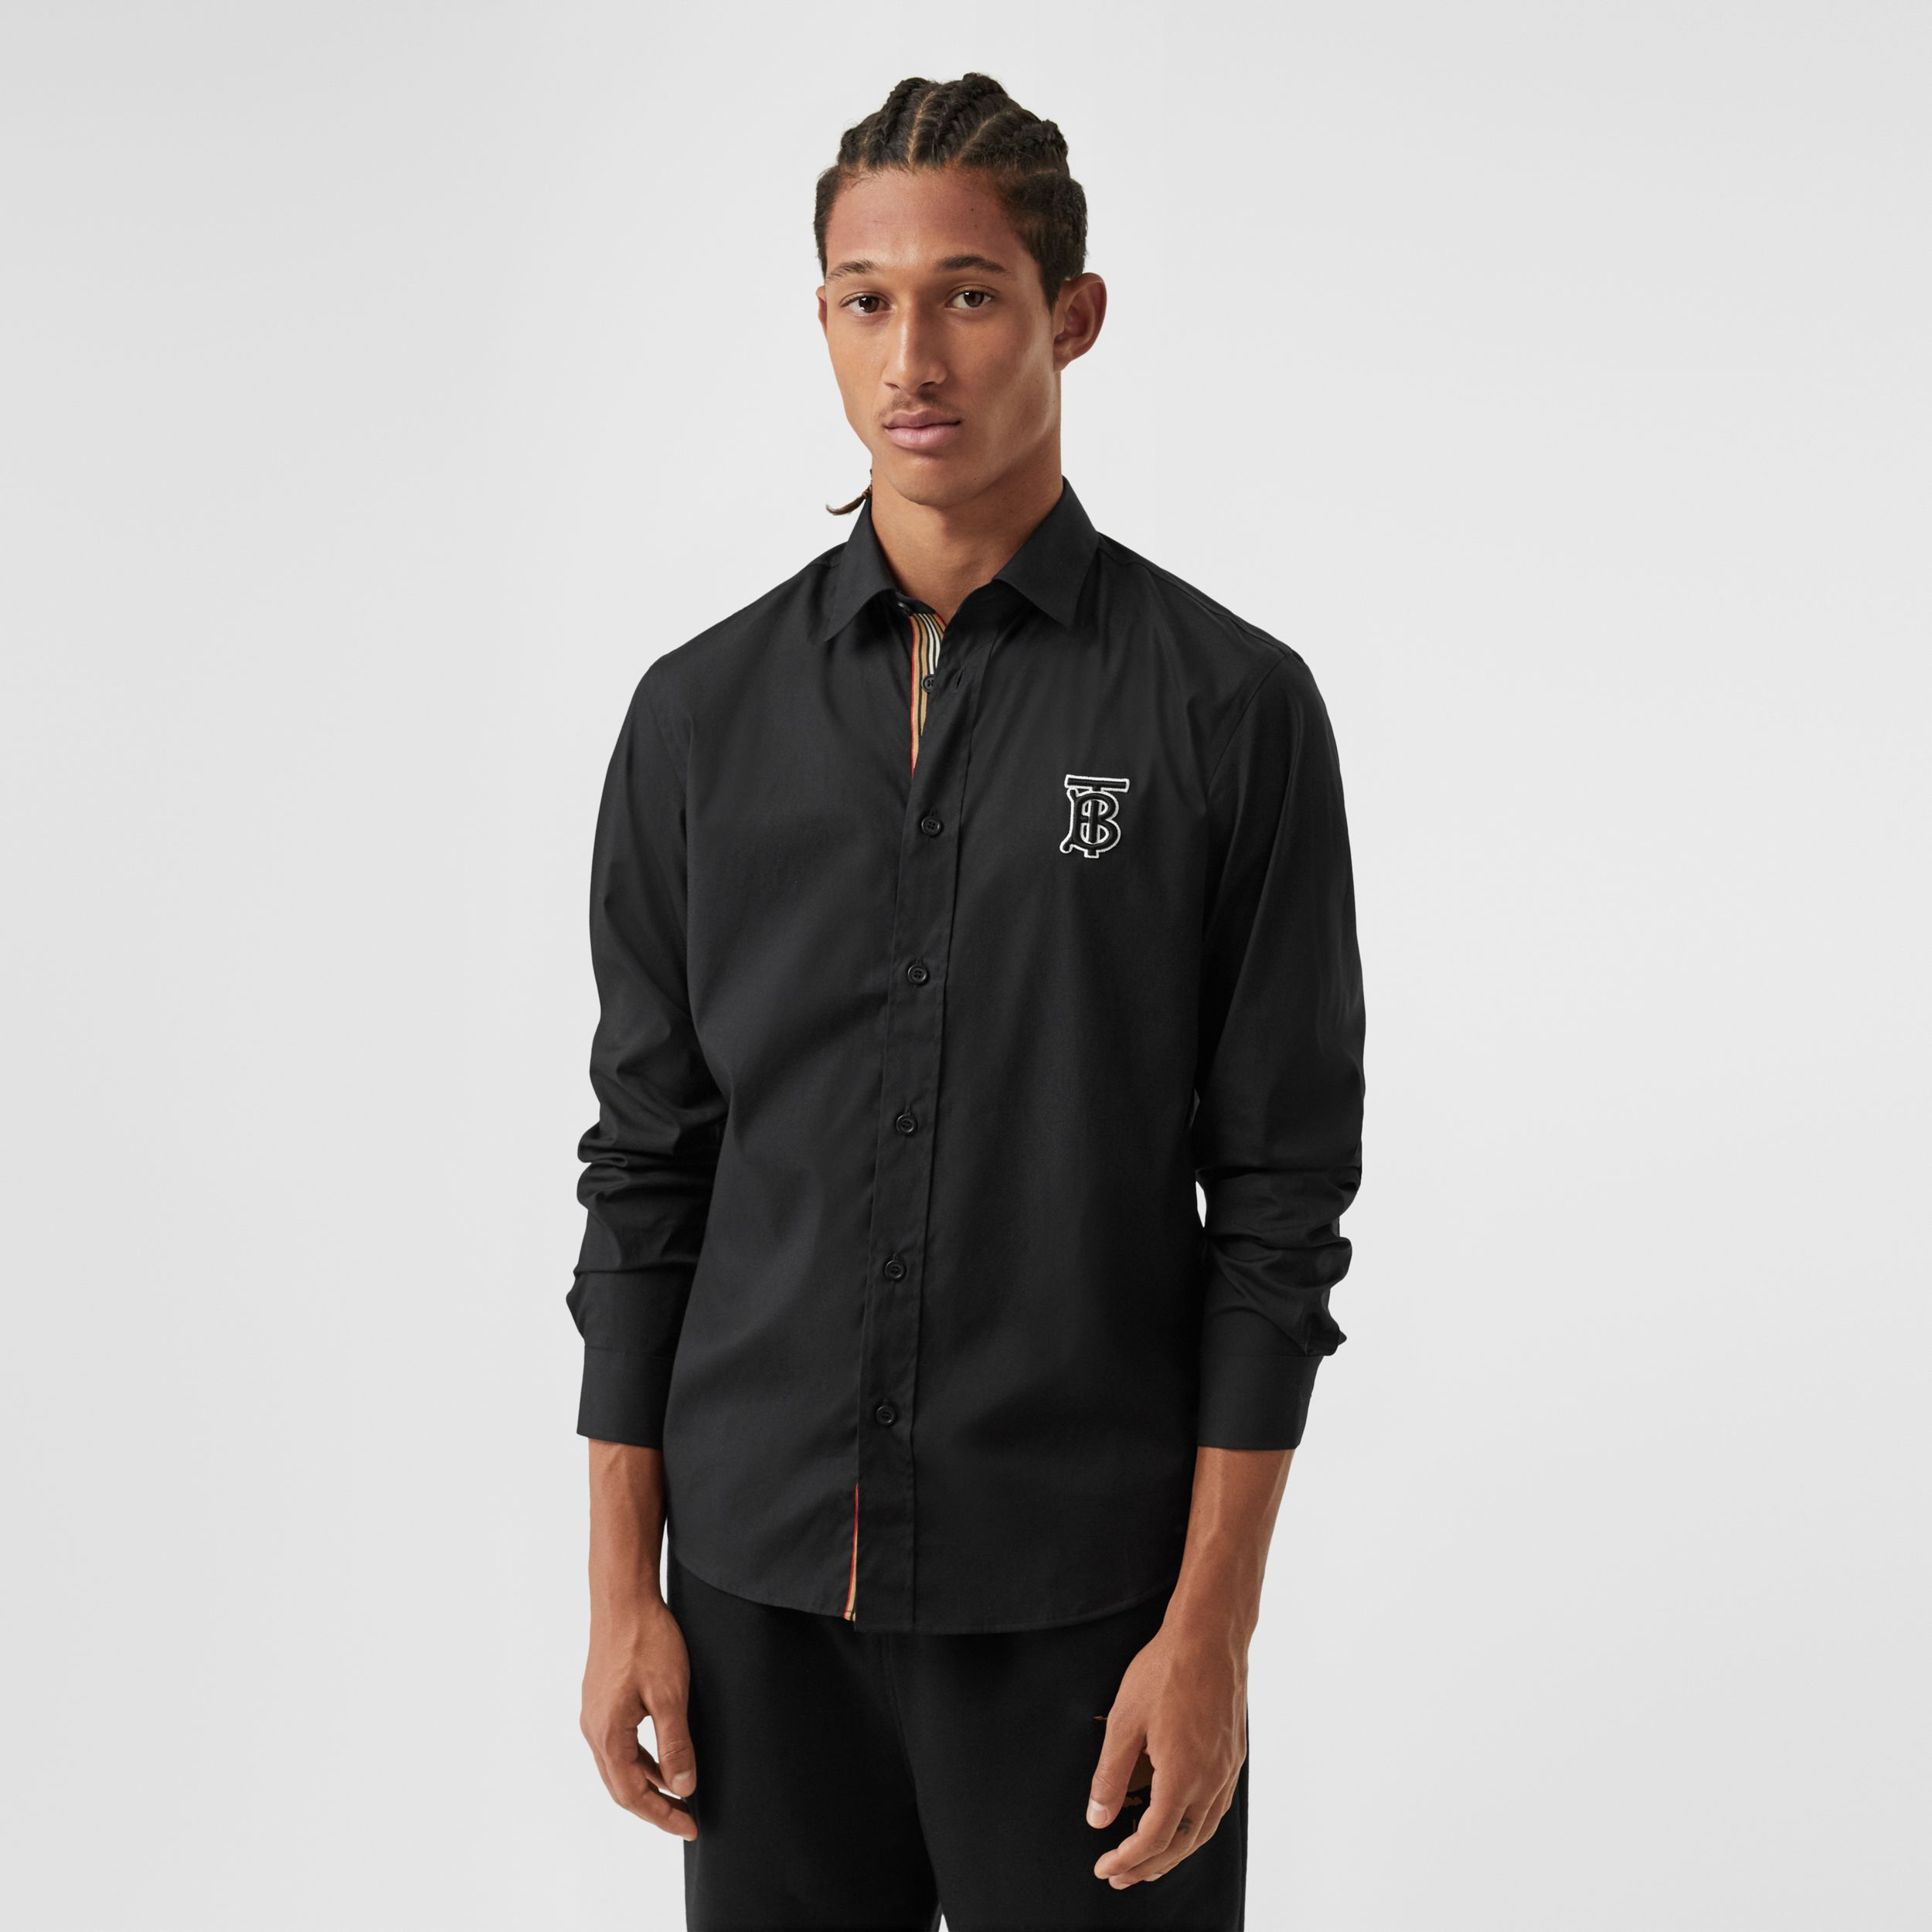 Monogram Motif Stretch Cotton Poplin Shirt in Black - Men | Burberry - 1